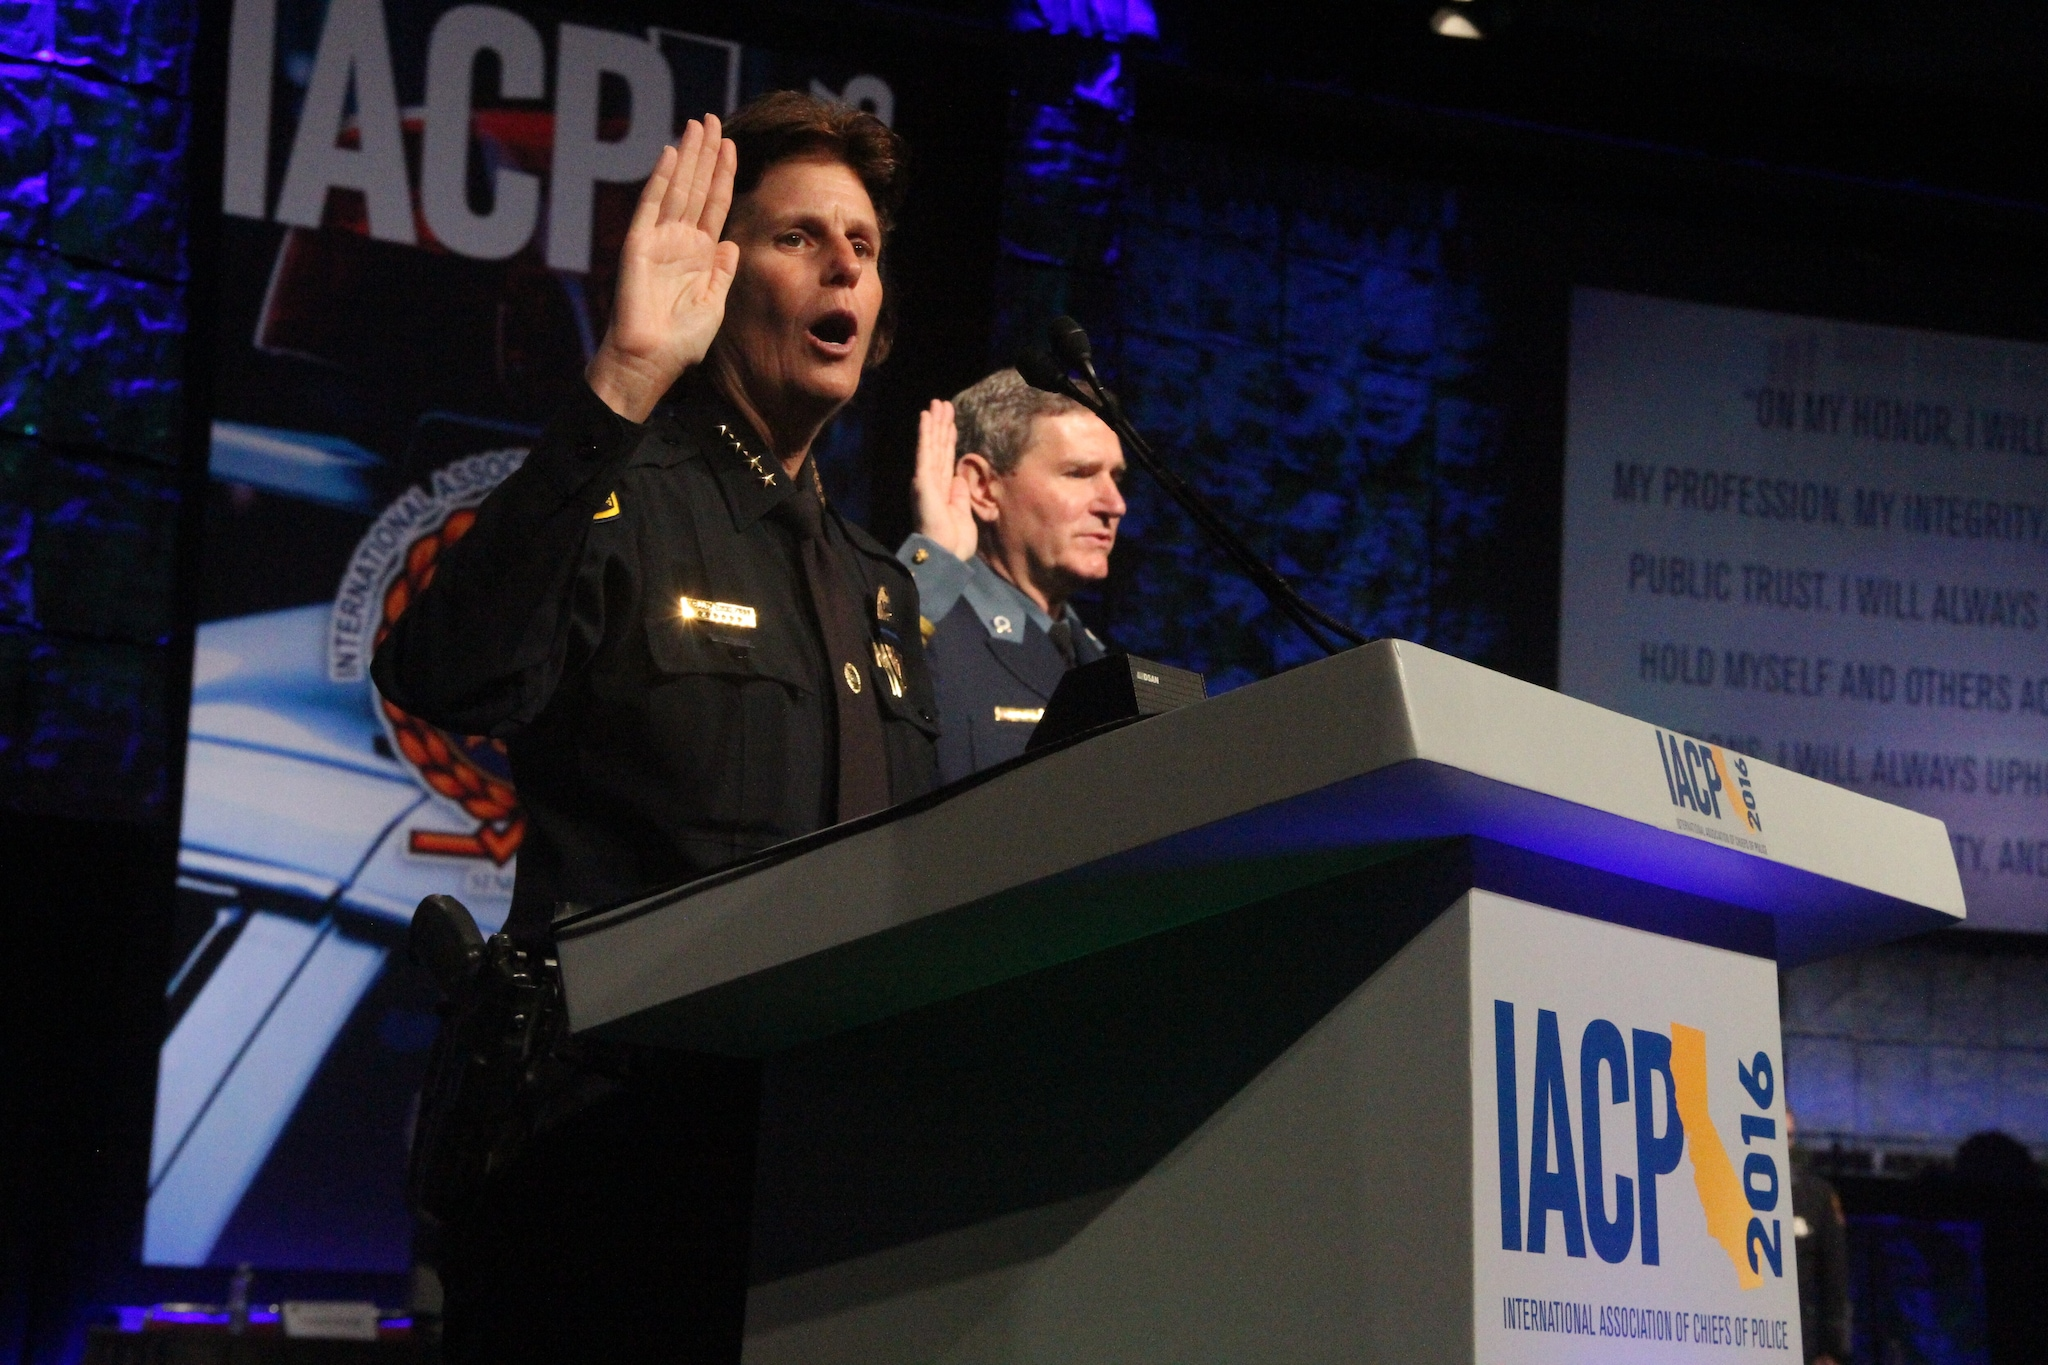 San Diego Police Chief Shelley Zimmerman leads the Oath of Honor during the National Association of Police Chiefs annual convention in San Diego Oct. 15-18, 2015. (Photo: Jared Morgan / Guns.com)